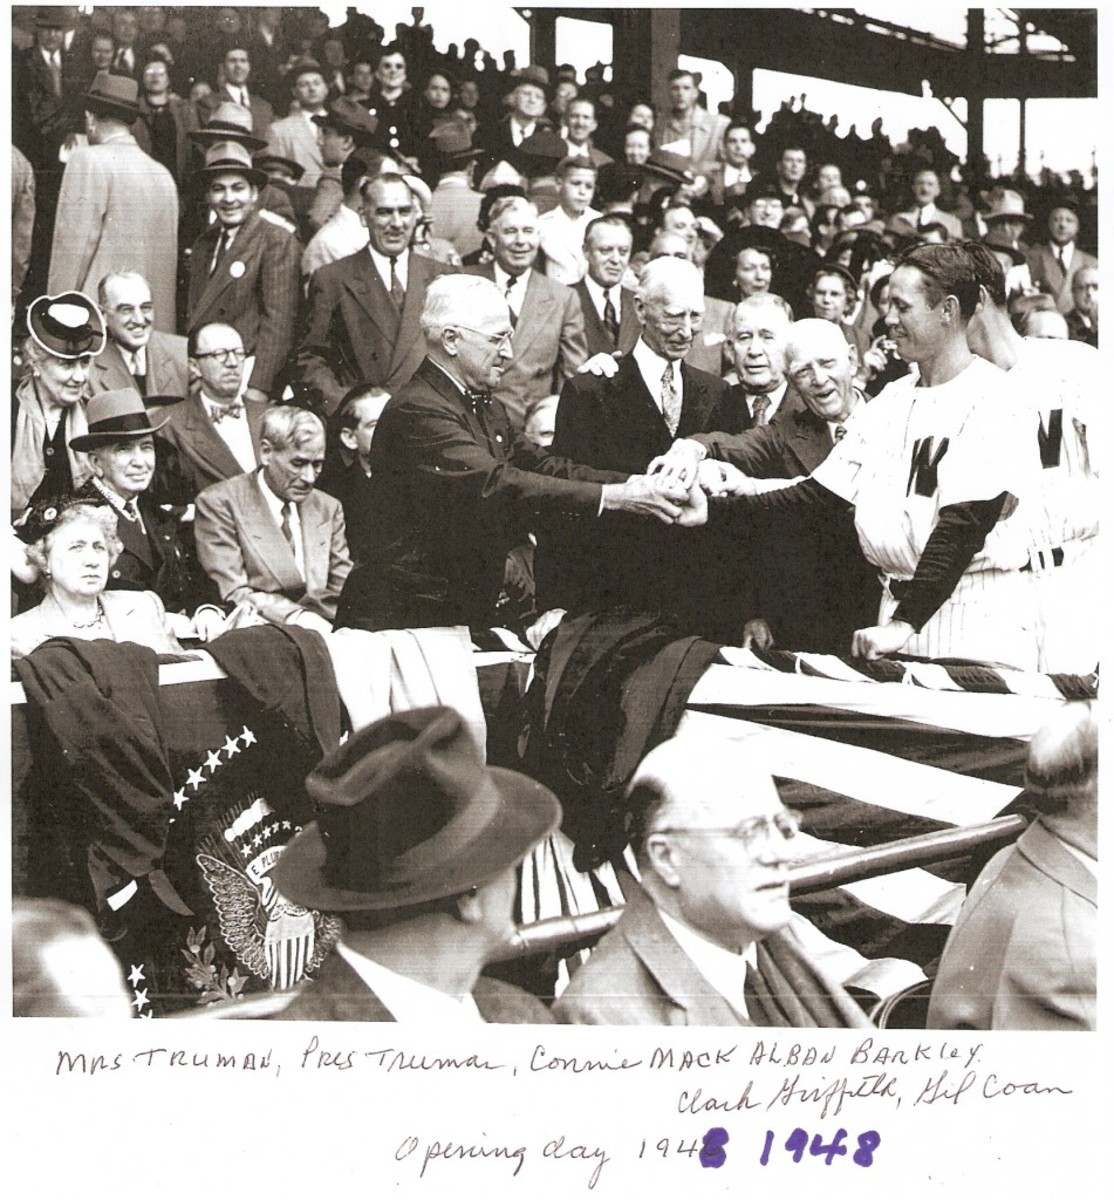 Opening Day 1949, Gil Coan of the Senators hands a ball to President Harry Truman. To the right of Truman are Connie Mack, Vice President Alben Barkley and Clark Griffith. Photo courtesy of Gil Coan.